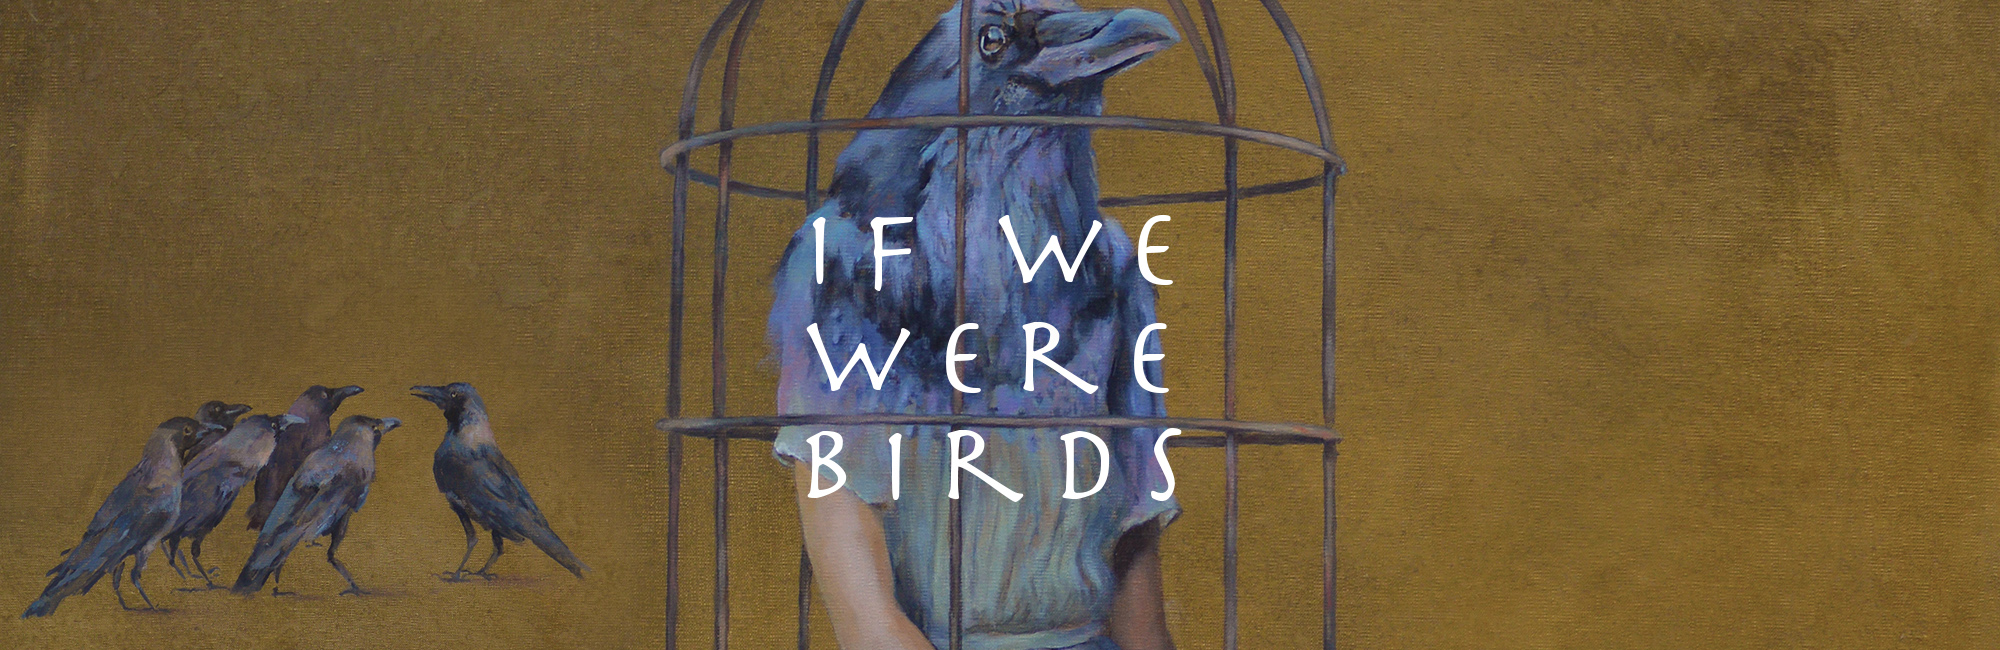 IfWeWereBirds-web.jpg